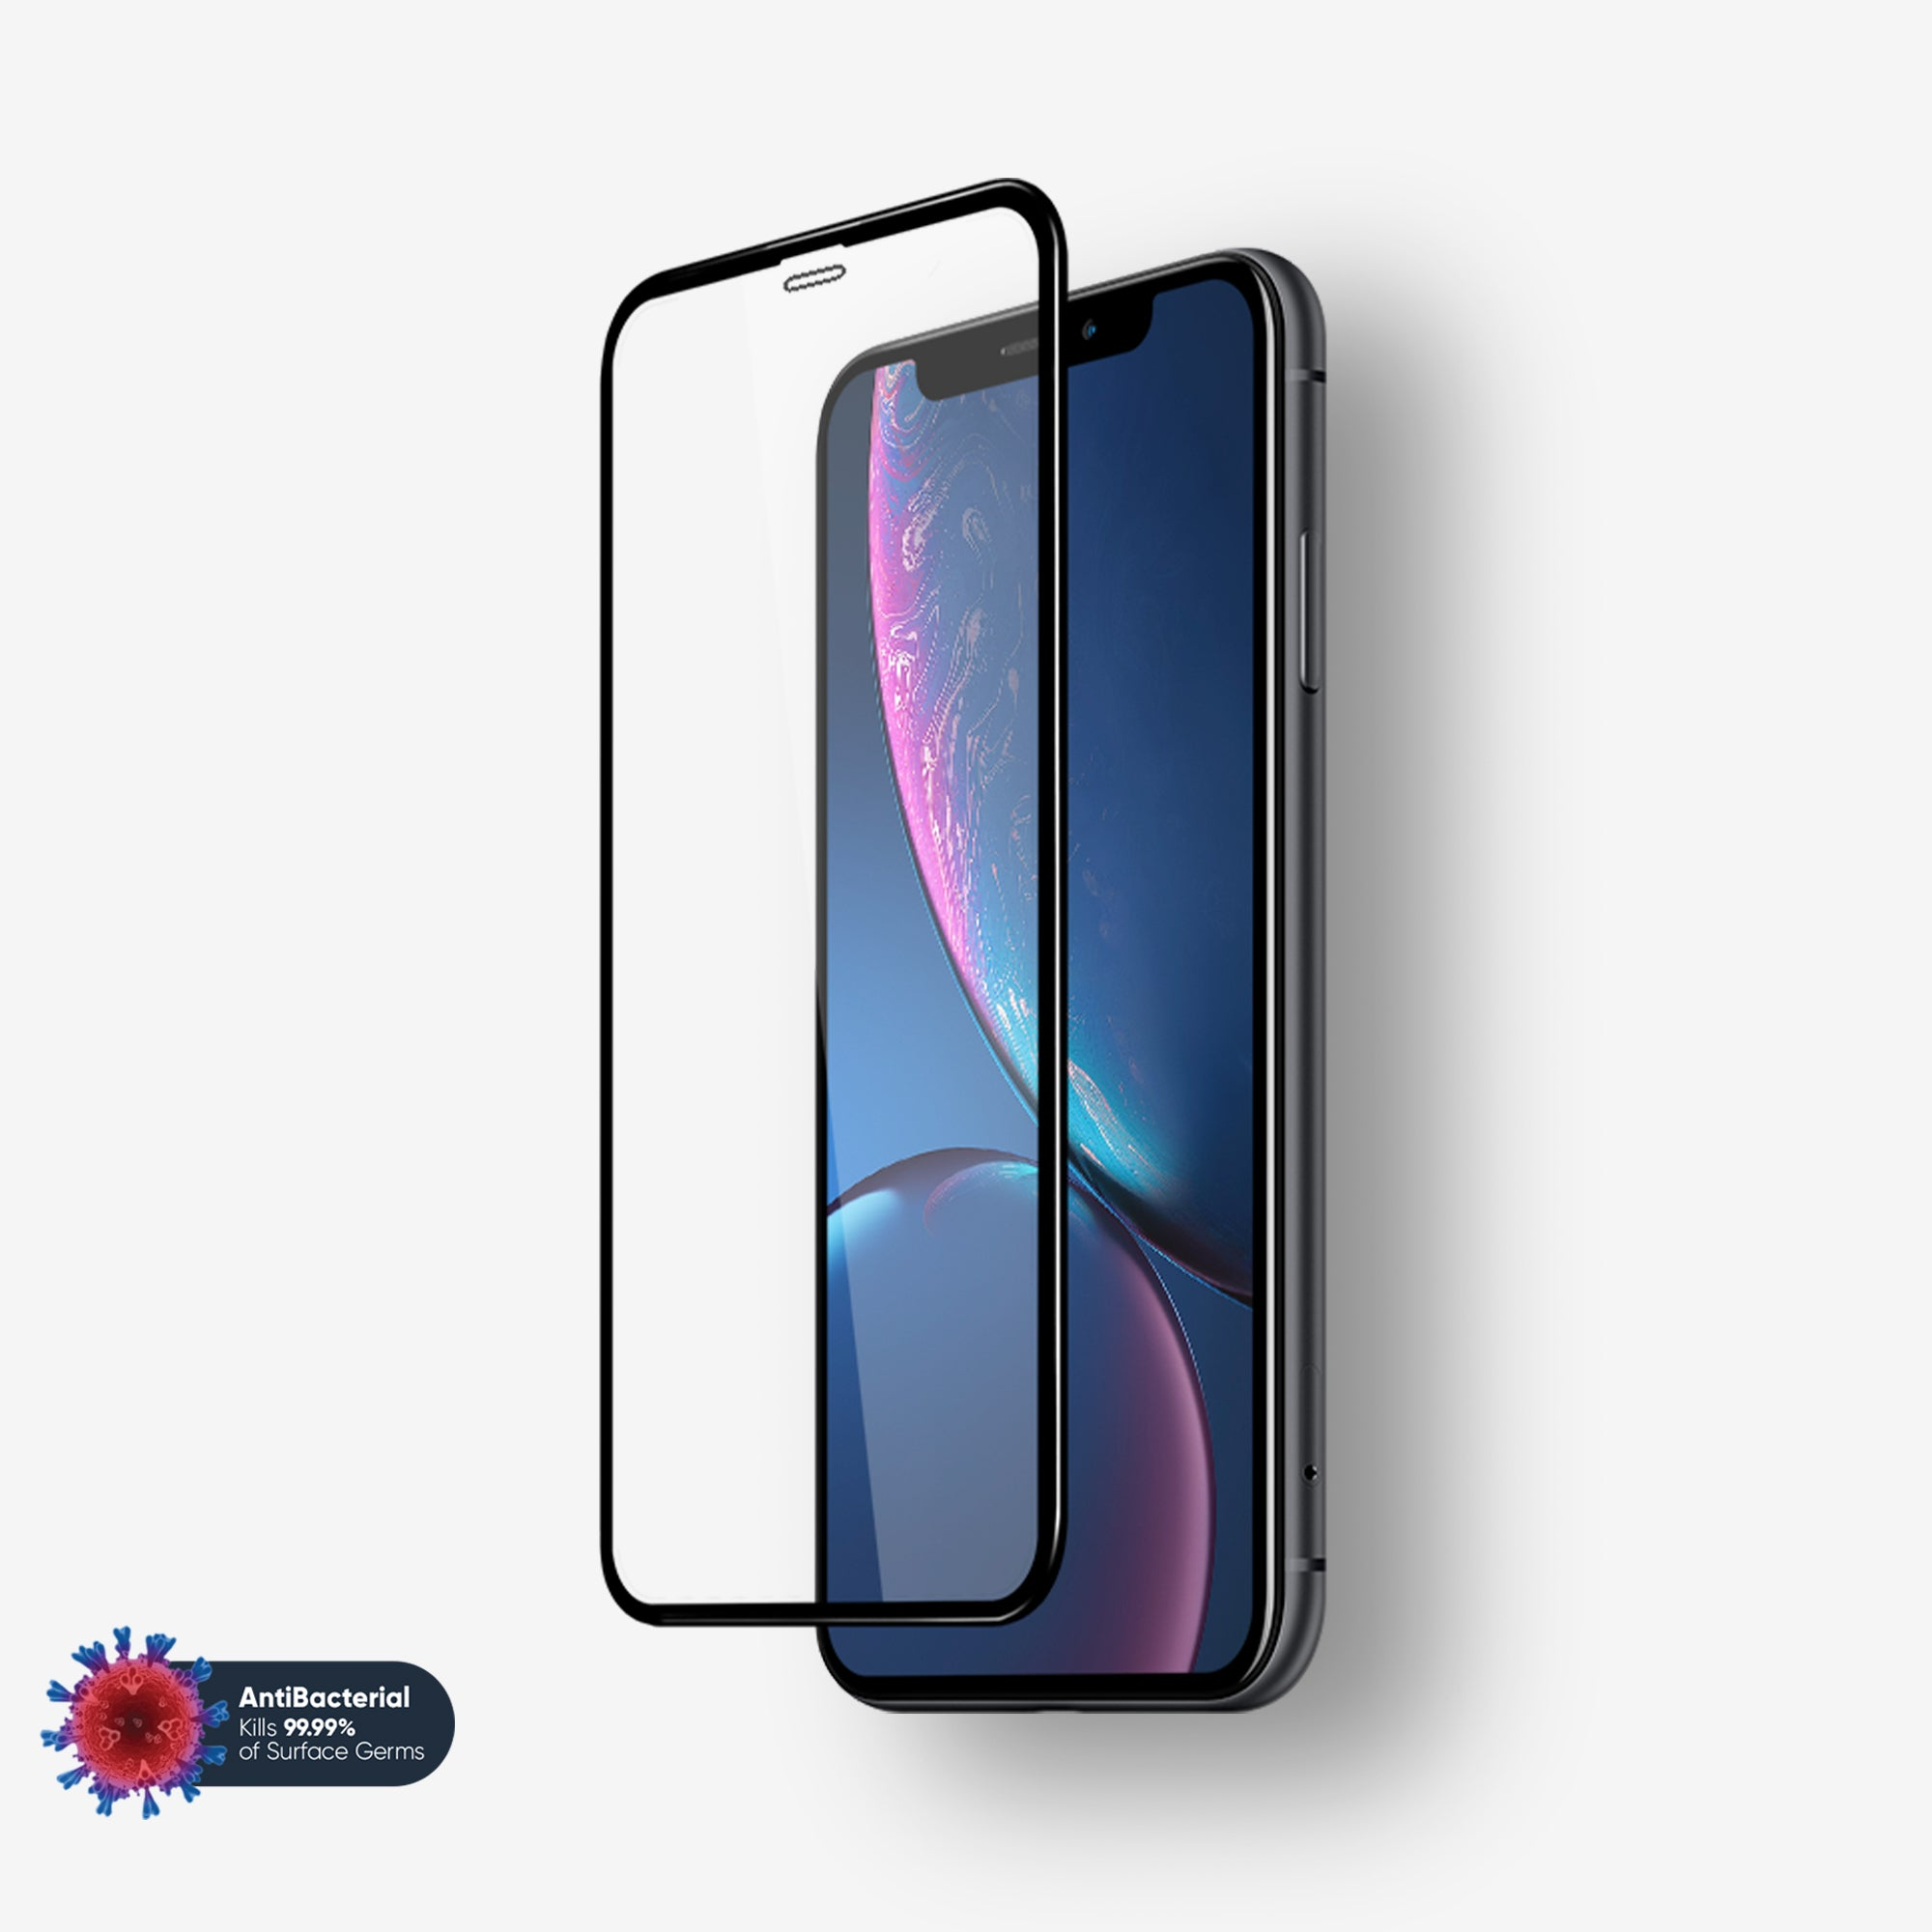 NanoArmour Anti-Microbial 3D best screen protector for iPhone XR